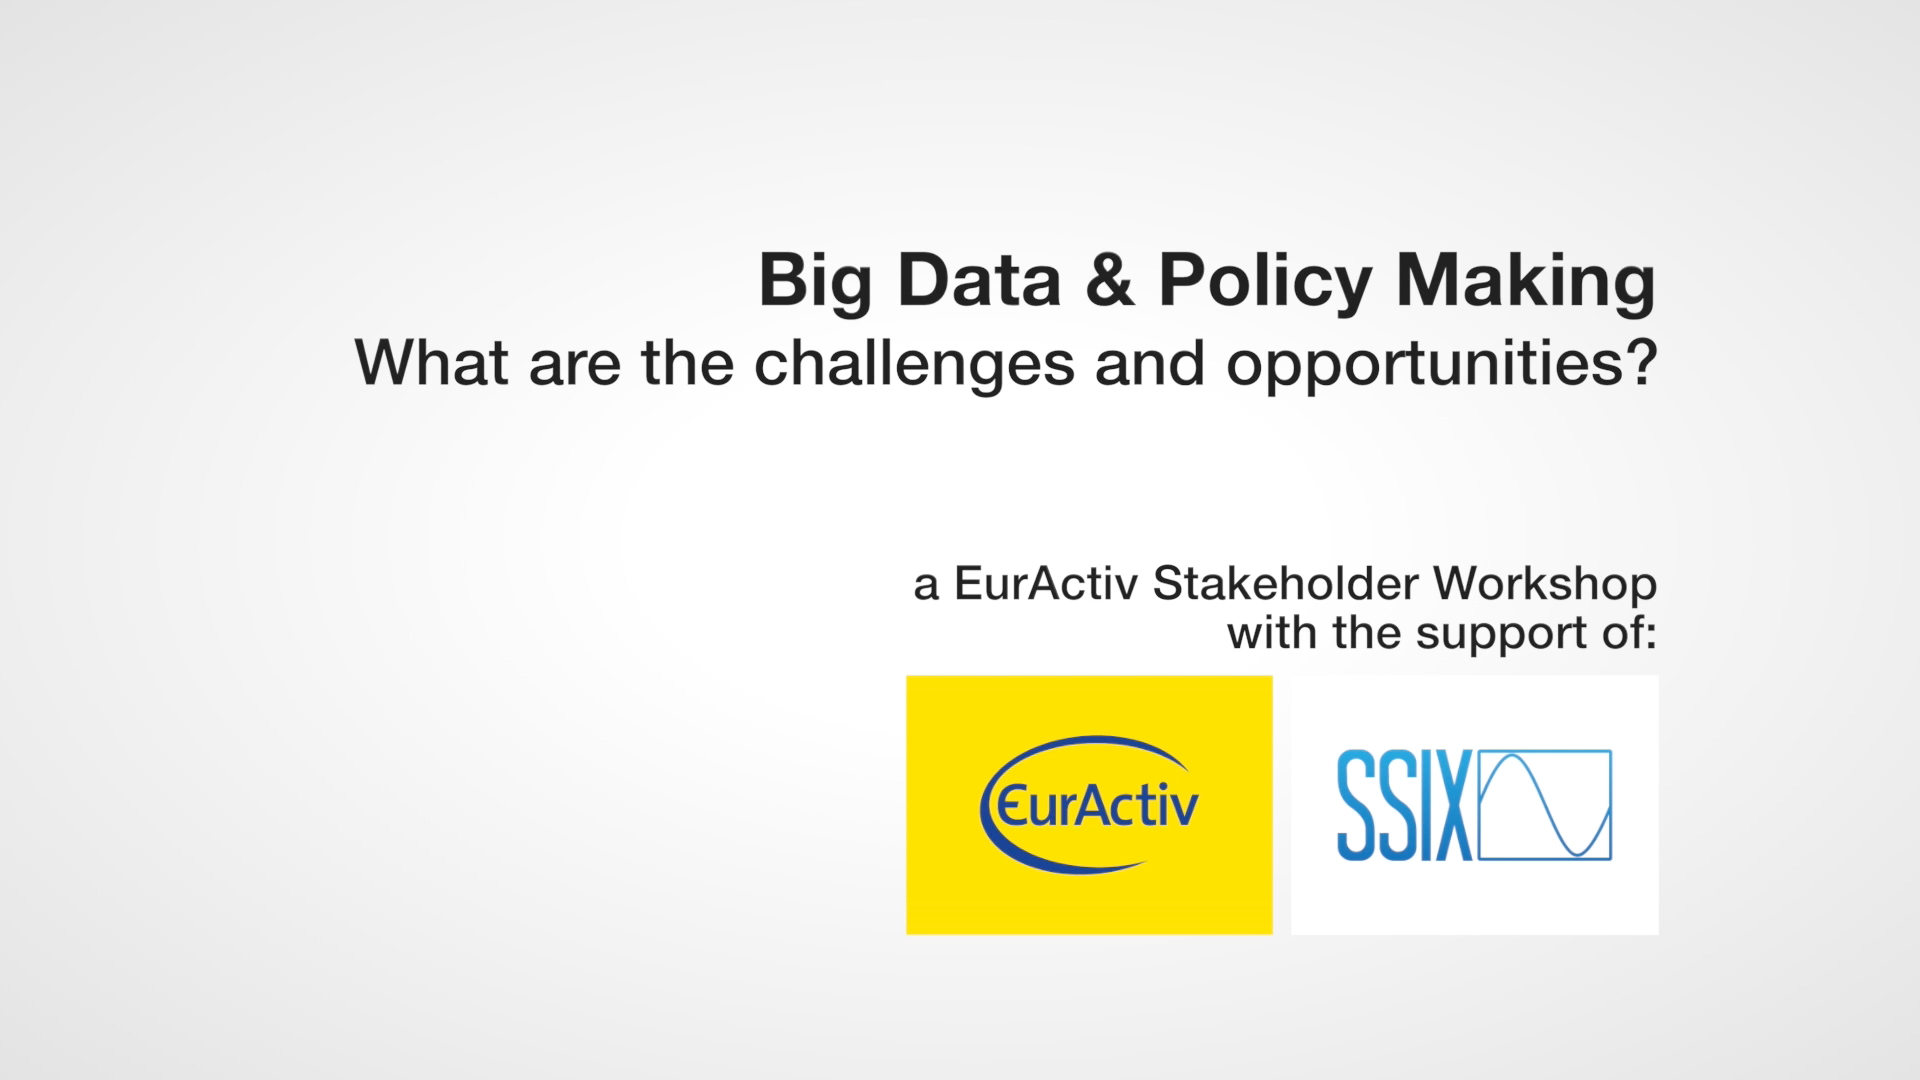 Big Data & Policy Making